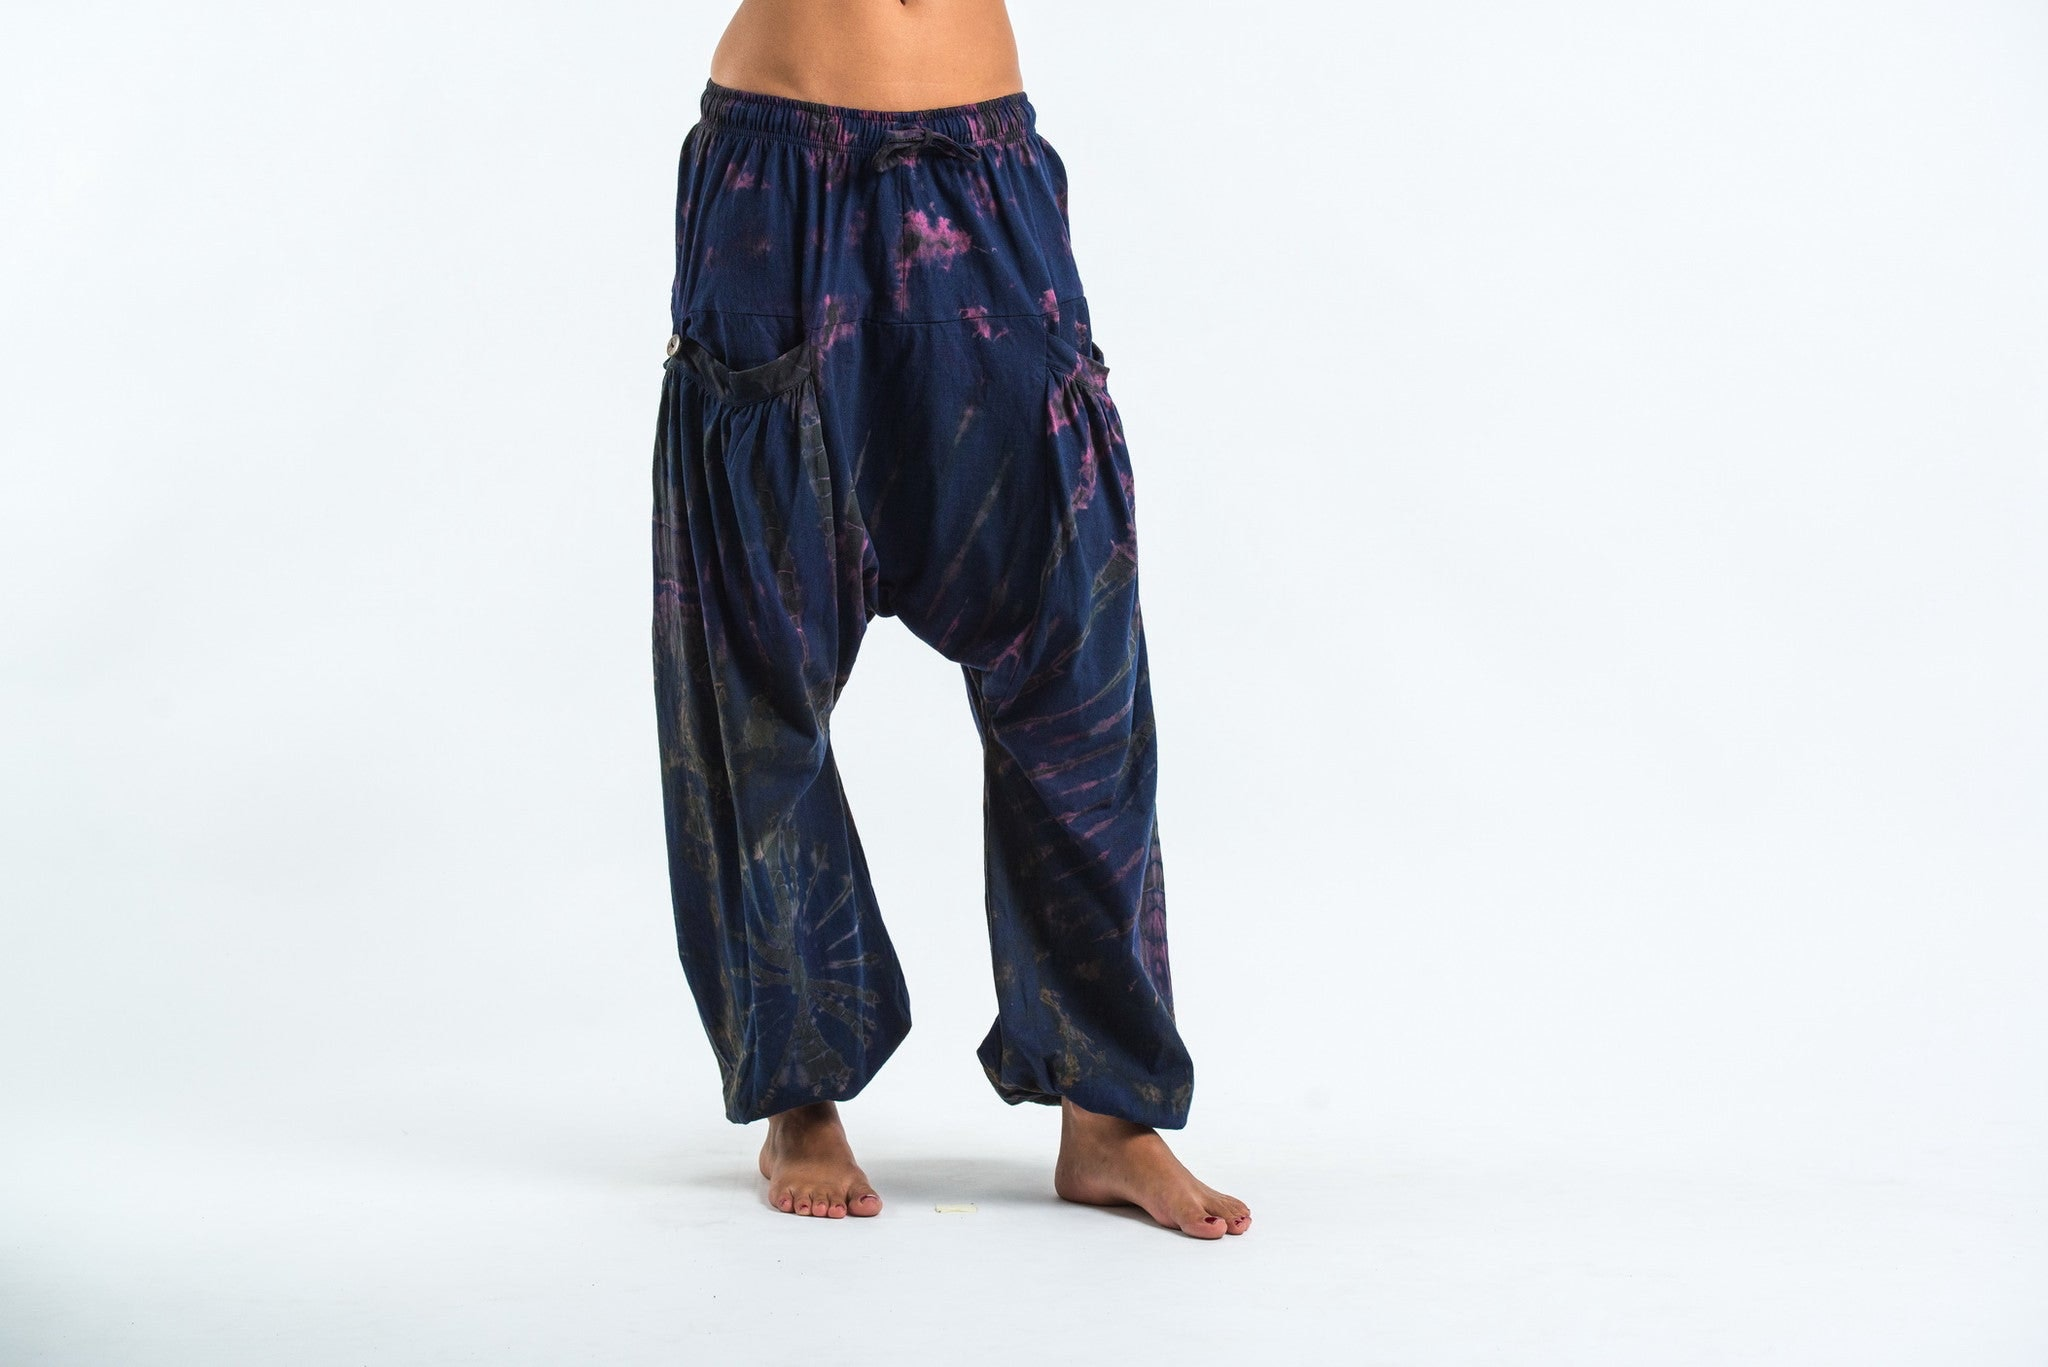 Beautiful Aladdin Pants Known As Harem Or Afghani Trousers Are Very Comfy  100% Cotton, Elasticated Waist With Drawstring, Elasticated Ankles , 2 Pockets 1 Zipped   Unisex Light And Cozy, Suitable For Indoors &amp Outdoors Perfect Wear For